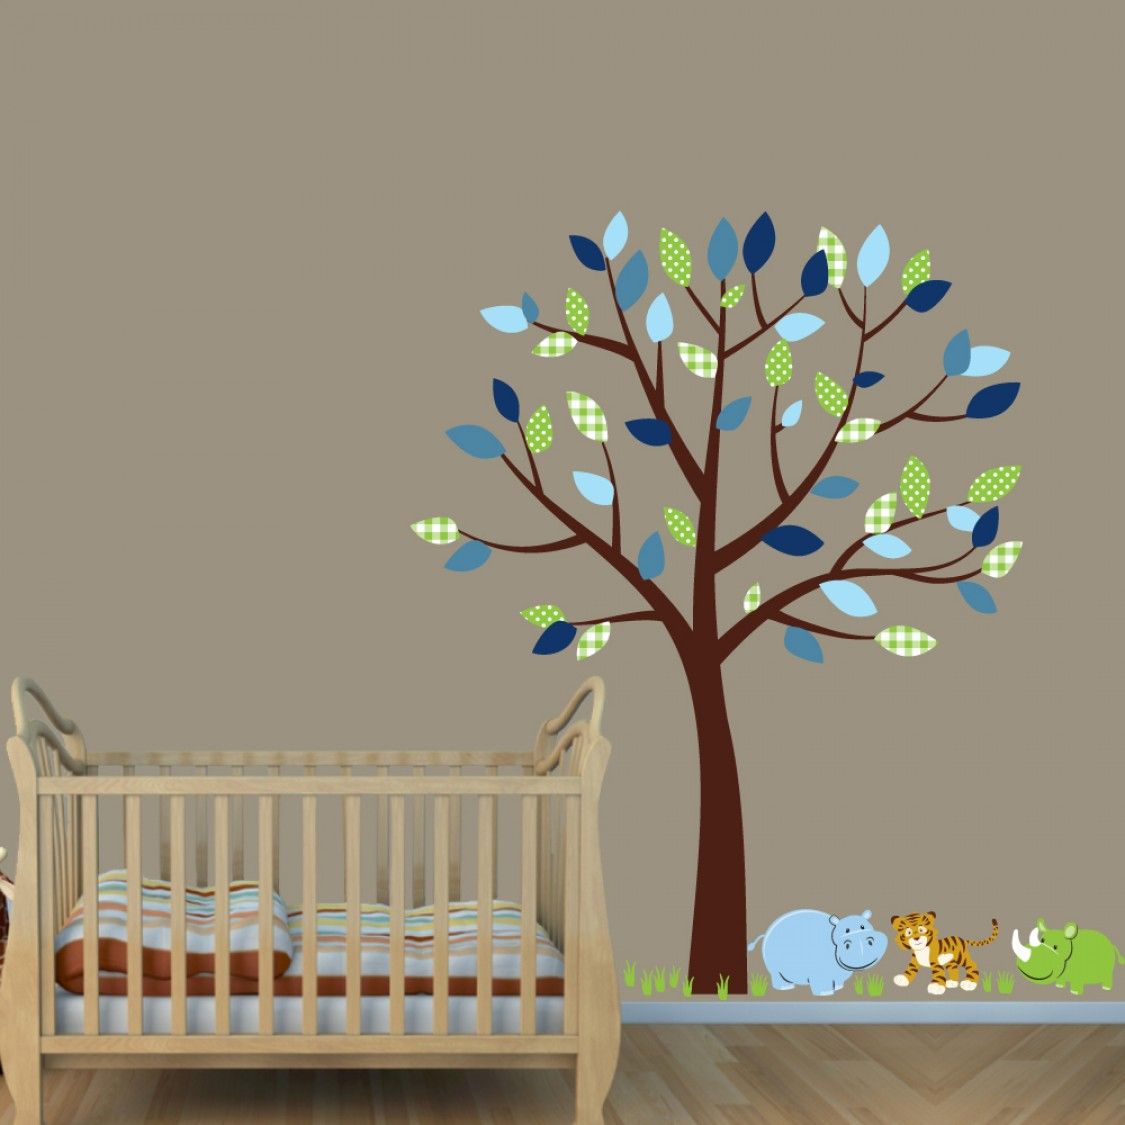 Green & Blue Jungle Tree Wall Decals With Hippo Decals For Childrens Rooms